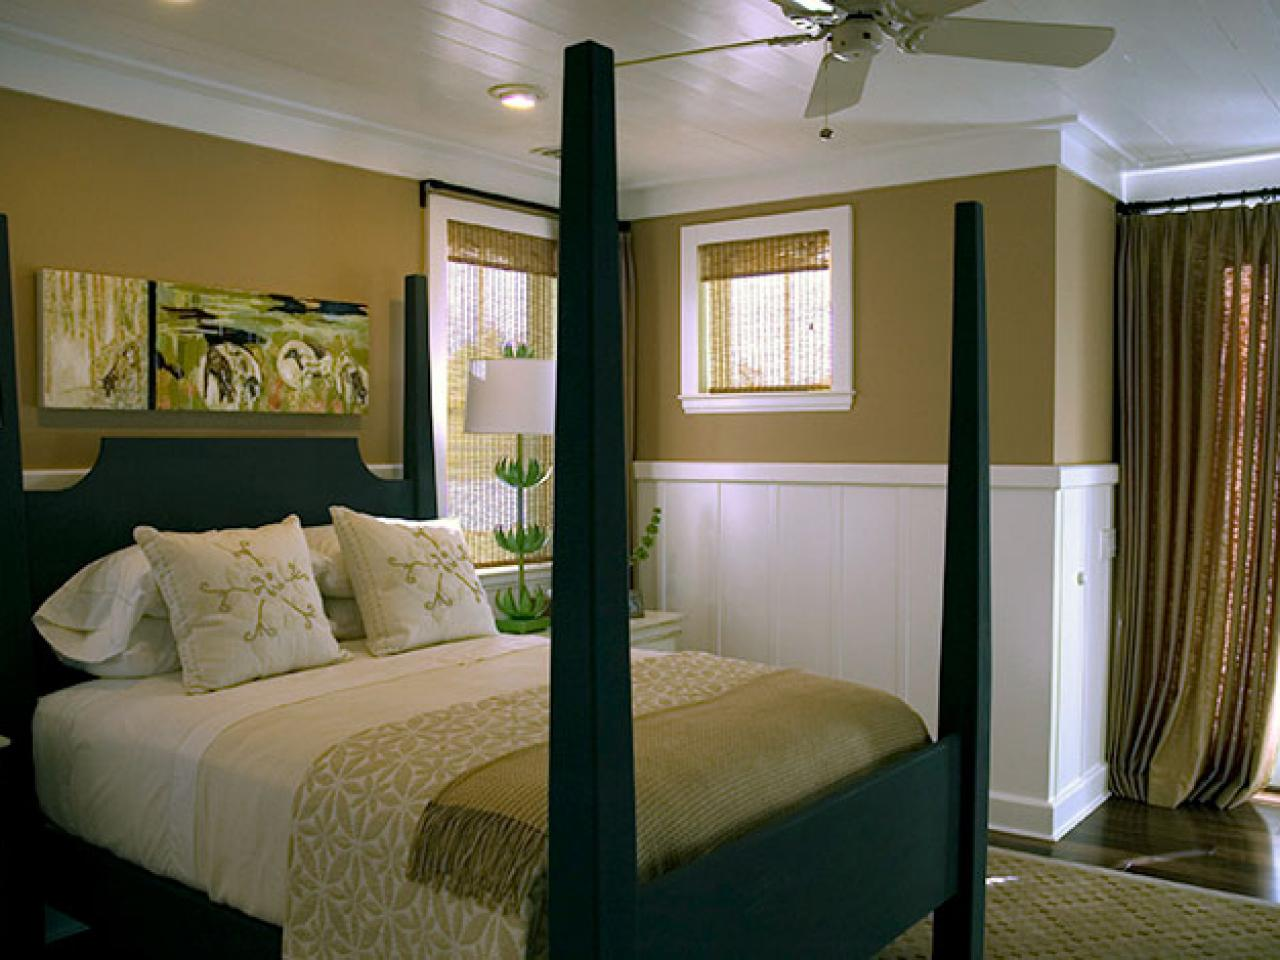 Bedroom Ceiling Design Ideas: Pictures, Options & Tips | HGTV